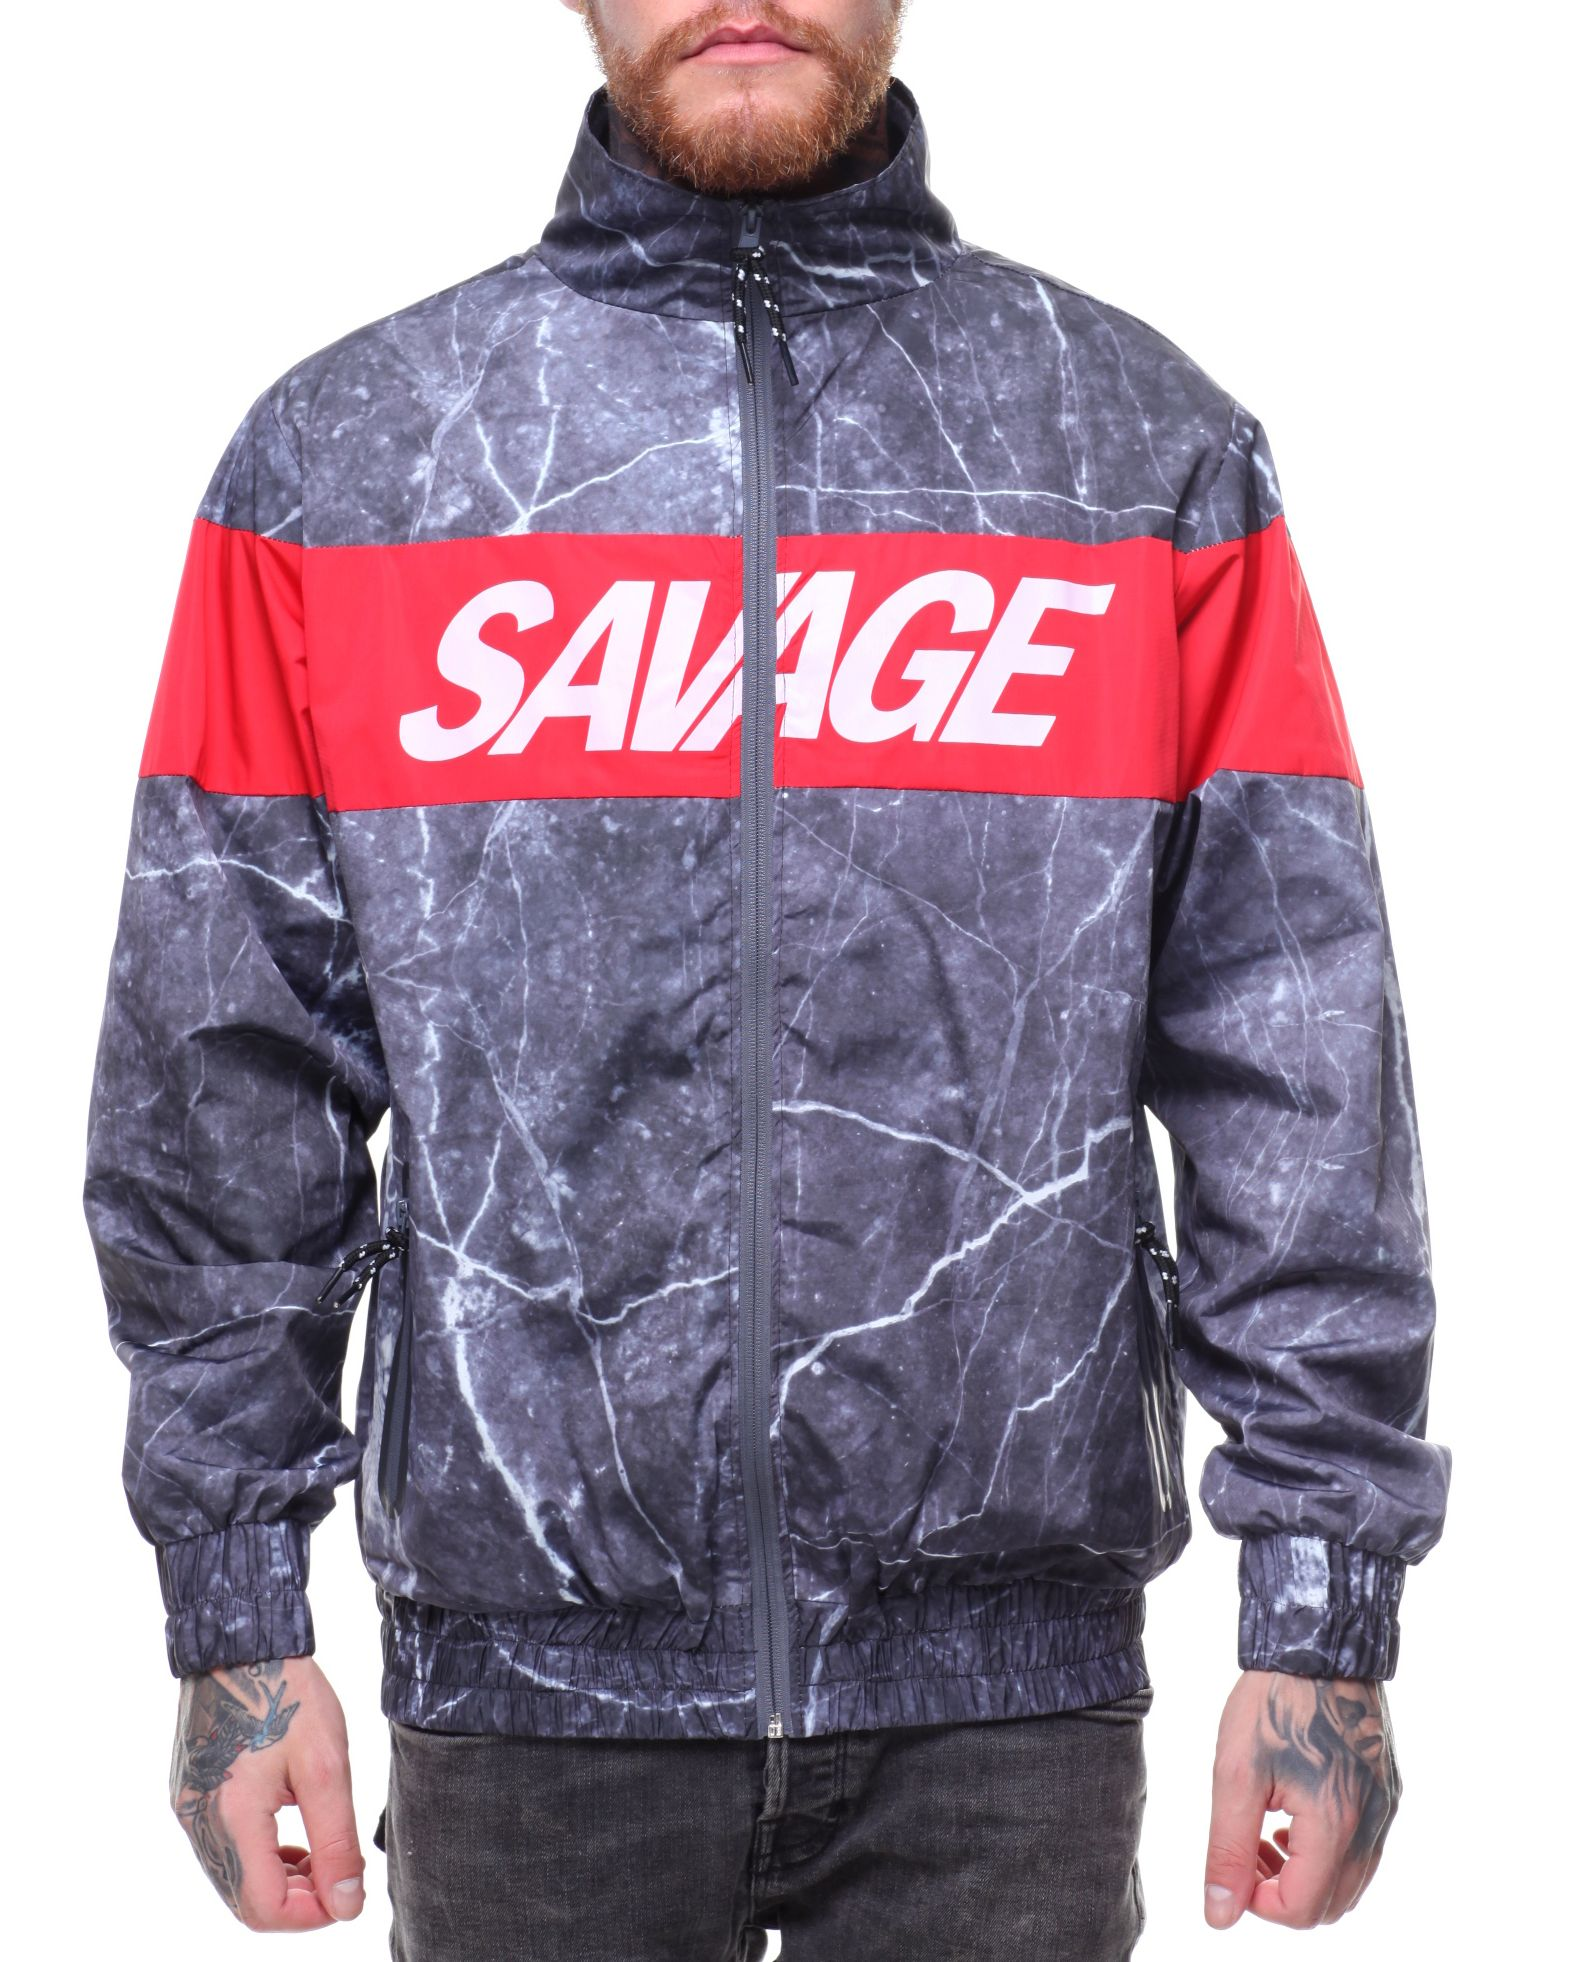 Savage Track Jacket Men S Outerwear From Hudson Nyc Find Hudson Nyc Fashion More At Drjays Com Hudson Nyc Jackets Mens Jackets [ 1962 x 1570 Pixel ]